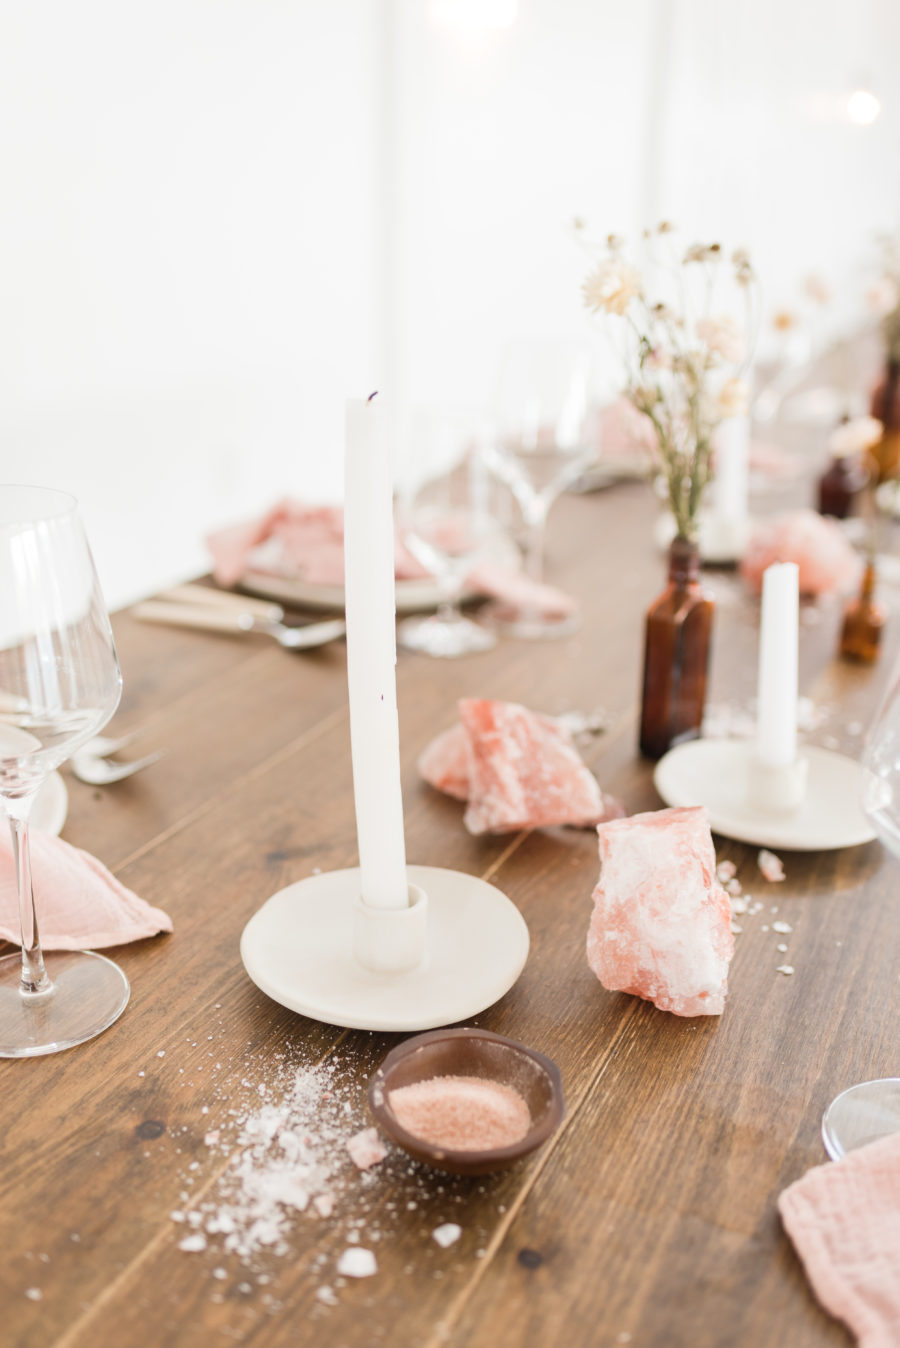 Candle Wedding Centerpiece: Organic Eco-Friendly Wedding Styled Shoot featured on Nashville Bride Guide